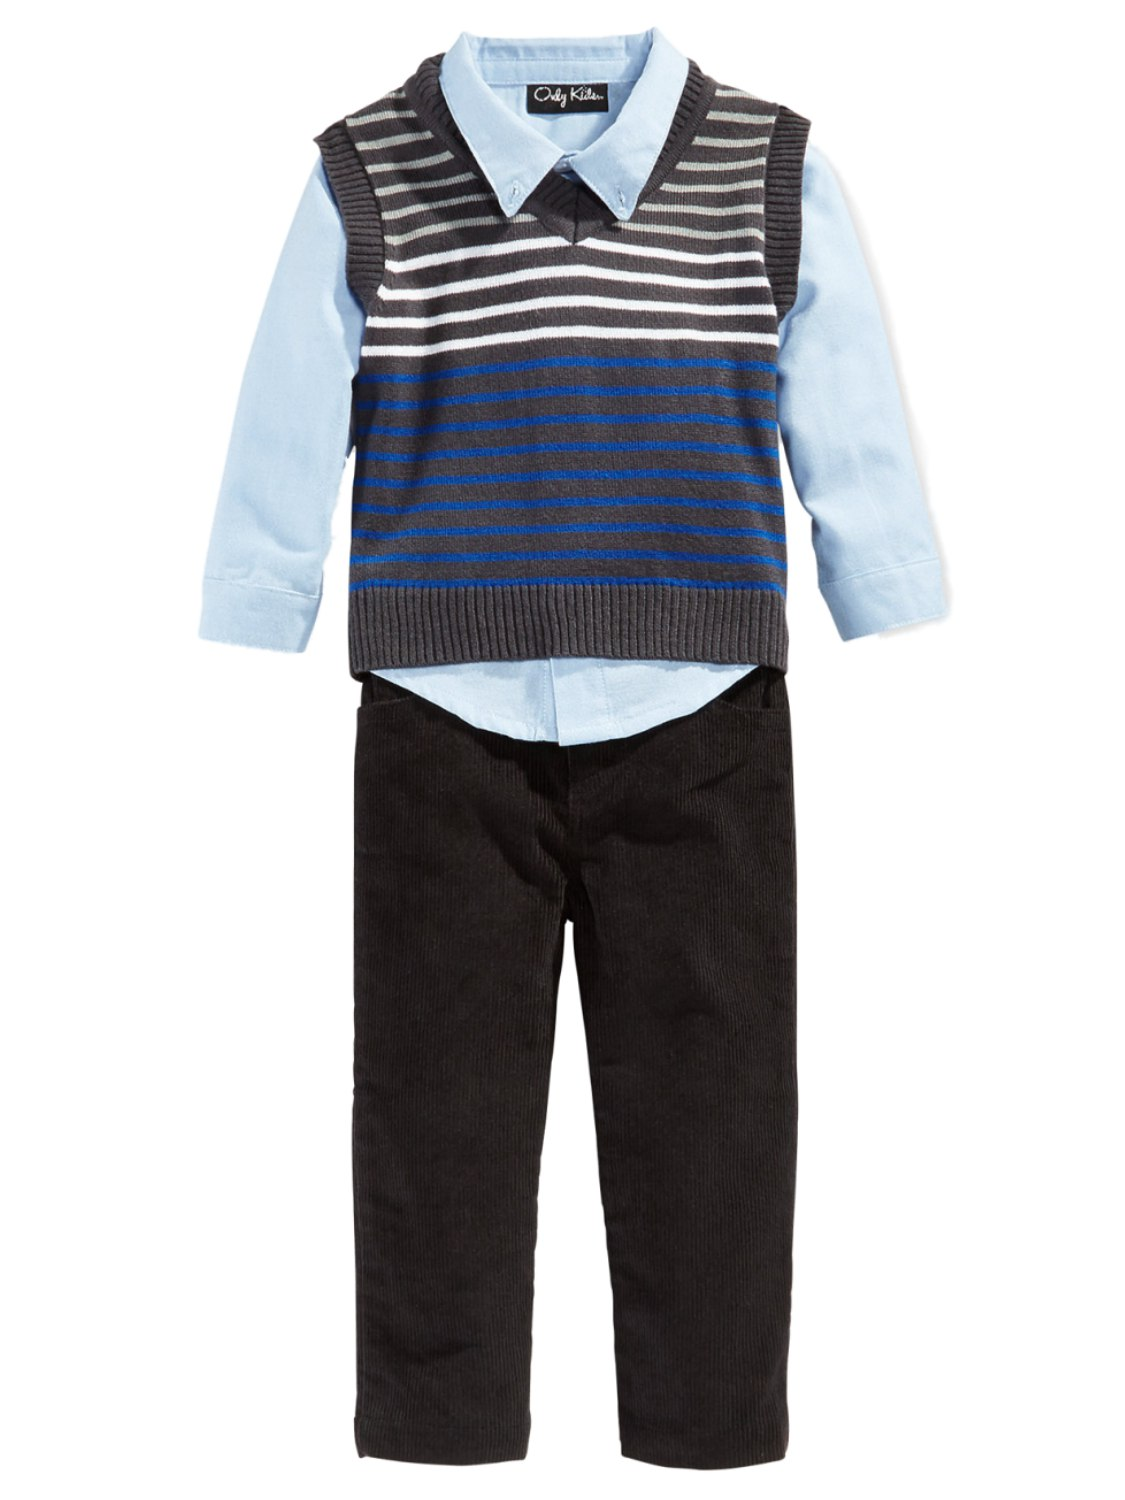 Only Kids Infant Boys 3 Piece Dress Up Outfit Pants Shirt & Striped Sweater Vest